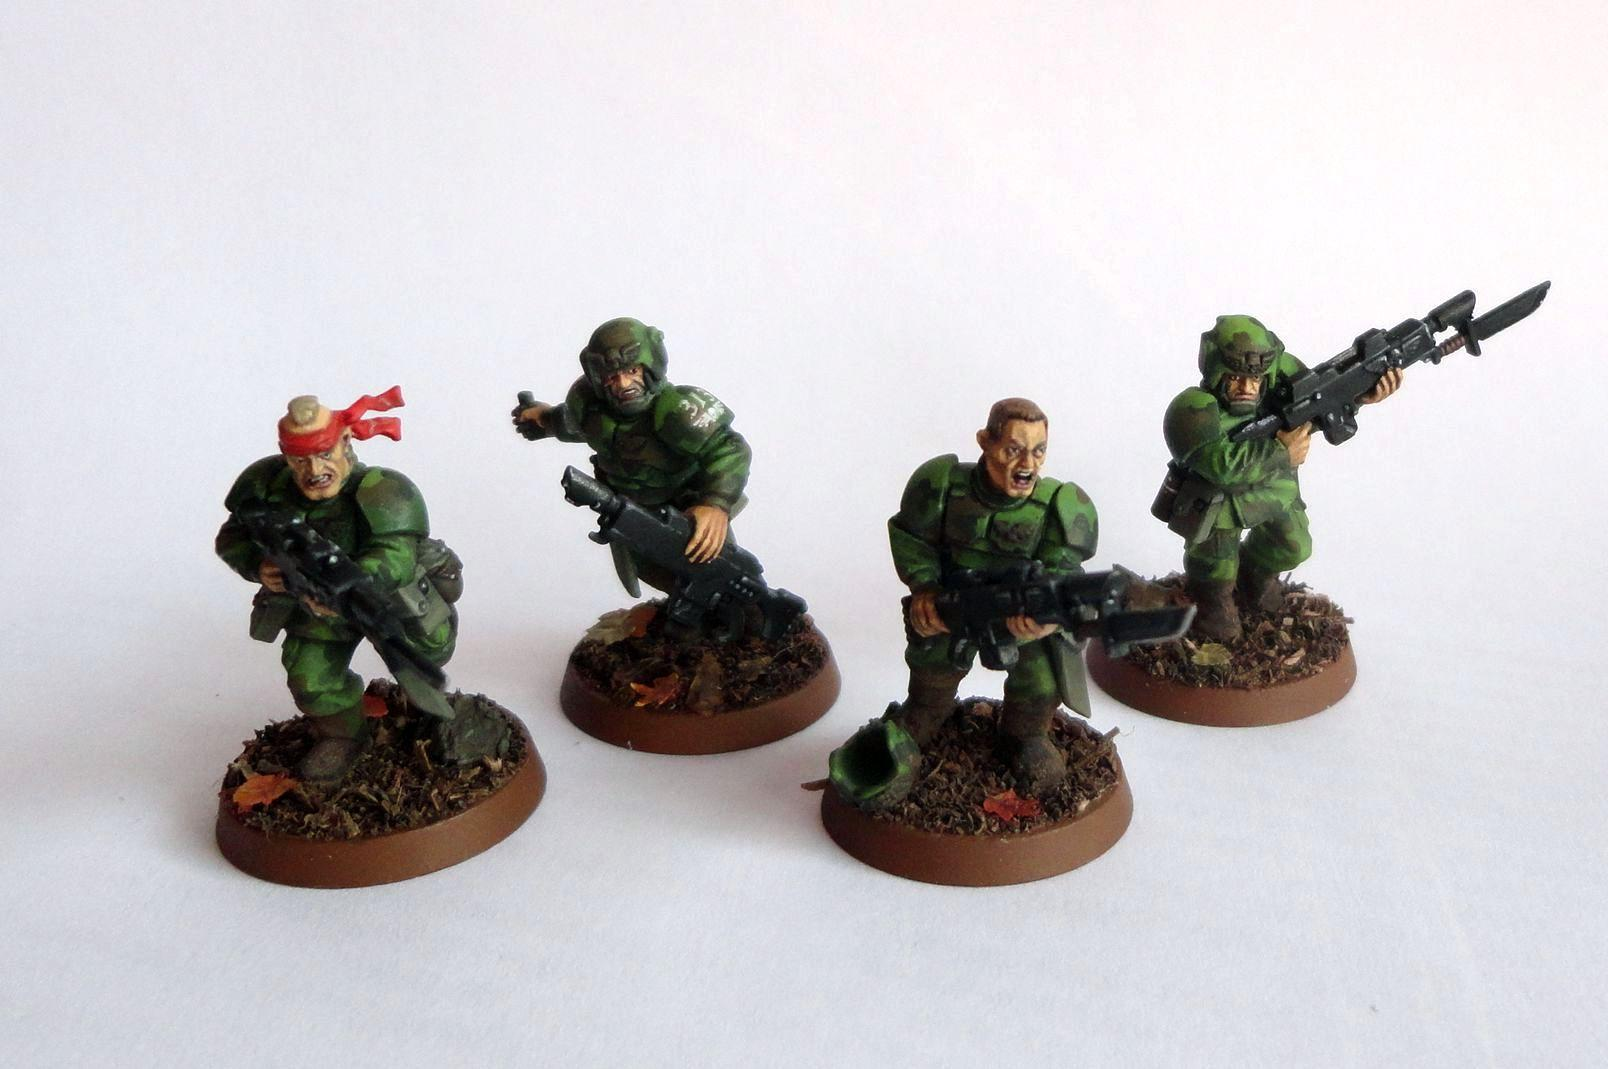 Astra Militarum, Bayonets, Cadians, Camouflage, Conversion, Imperial Guard, Infantry Squad